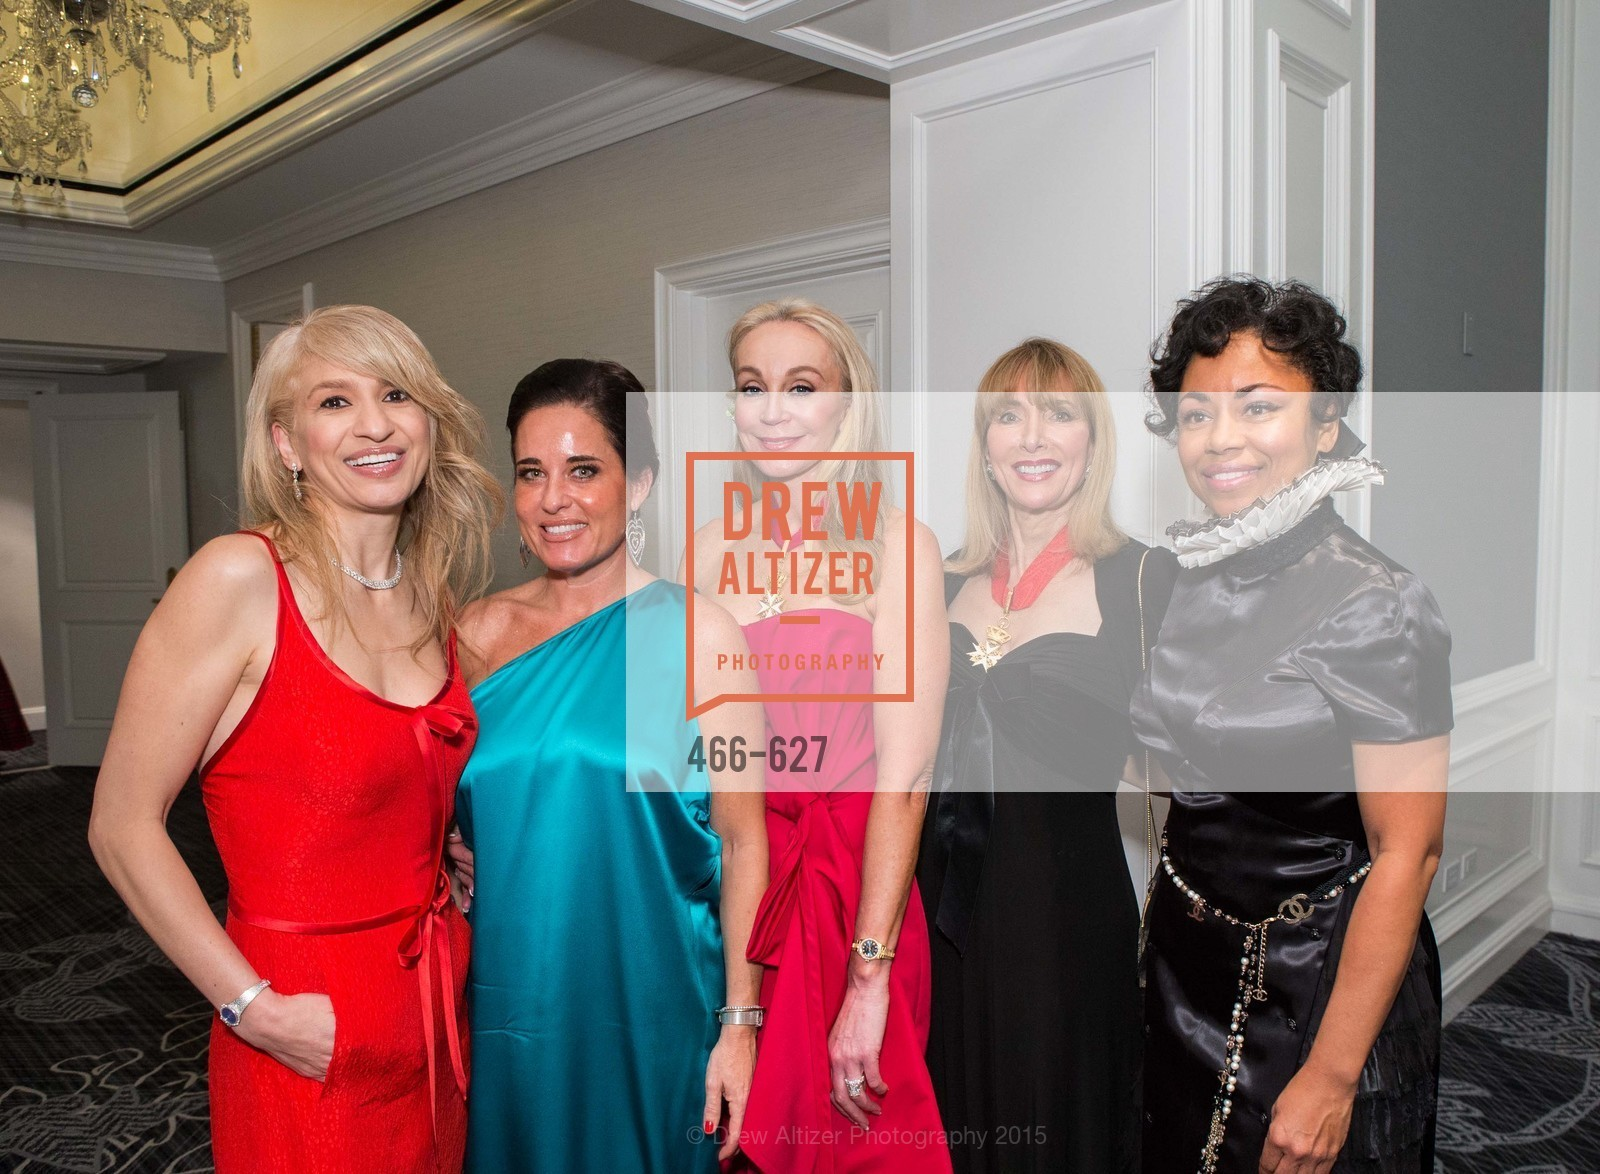 Navid Armstrong, Natalia Urrutia, Giselle Parry, Sydene Kober, Tanya Powell, Sovereign Order Of St John of Jerusalem Knights Hospitaller Gala, Ritz Carlton San Francisco, December 5th, 2015,Drew Altizer, Drew Altizer Photography, full-service agency, private events, San Francisco photographer, photographer california